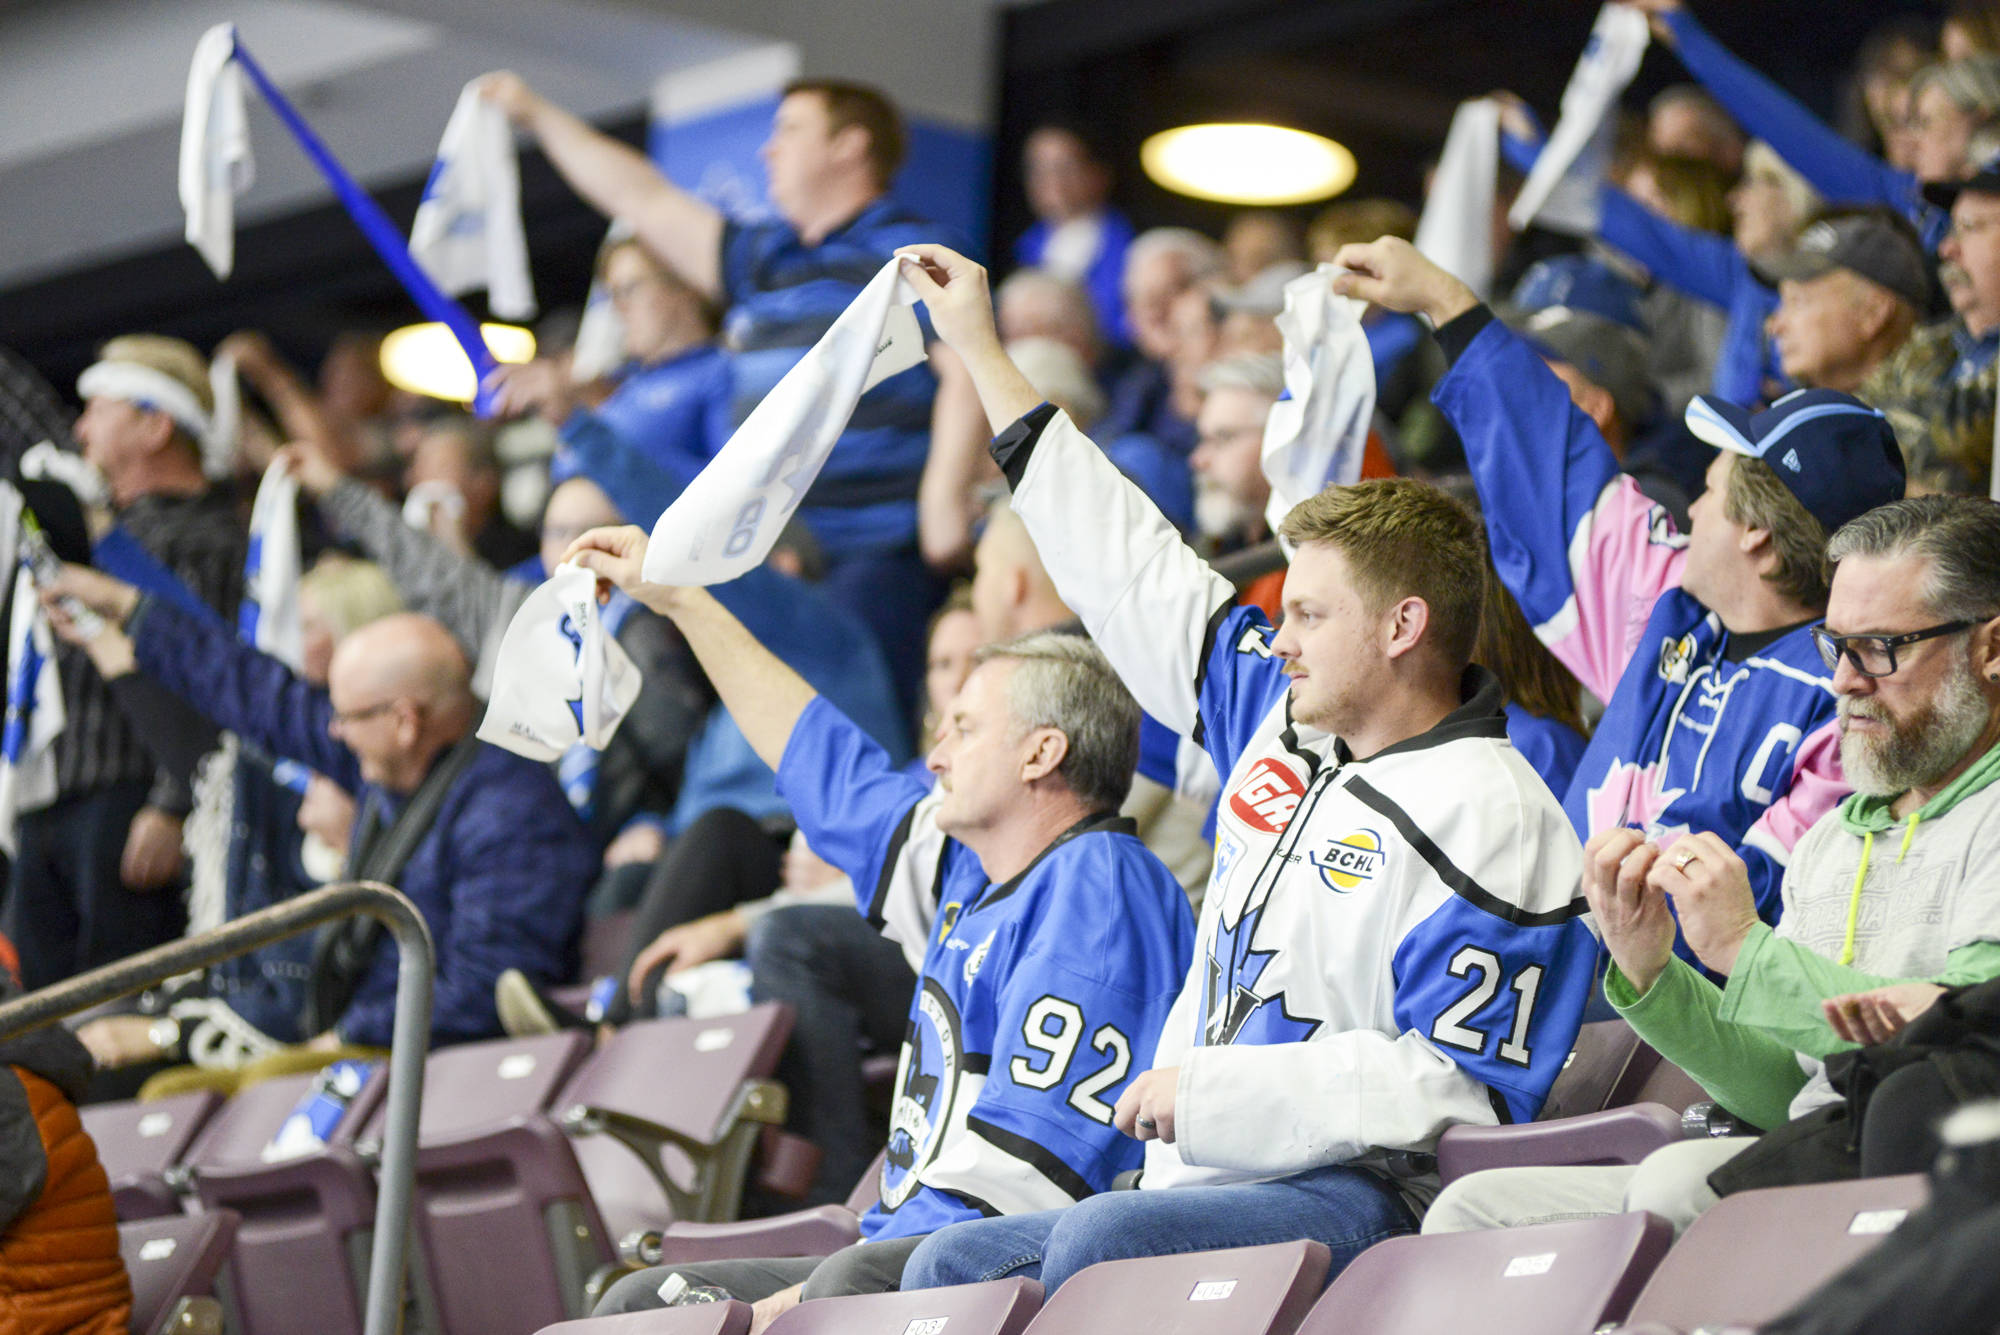 Penticton Vees fans may soon find themselves without any games to watch due to COVID-19. (Mark Brettt - Western News)